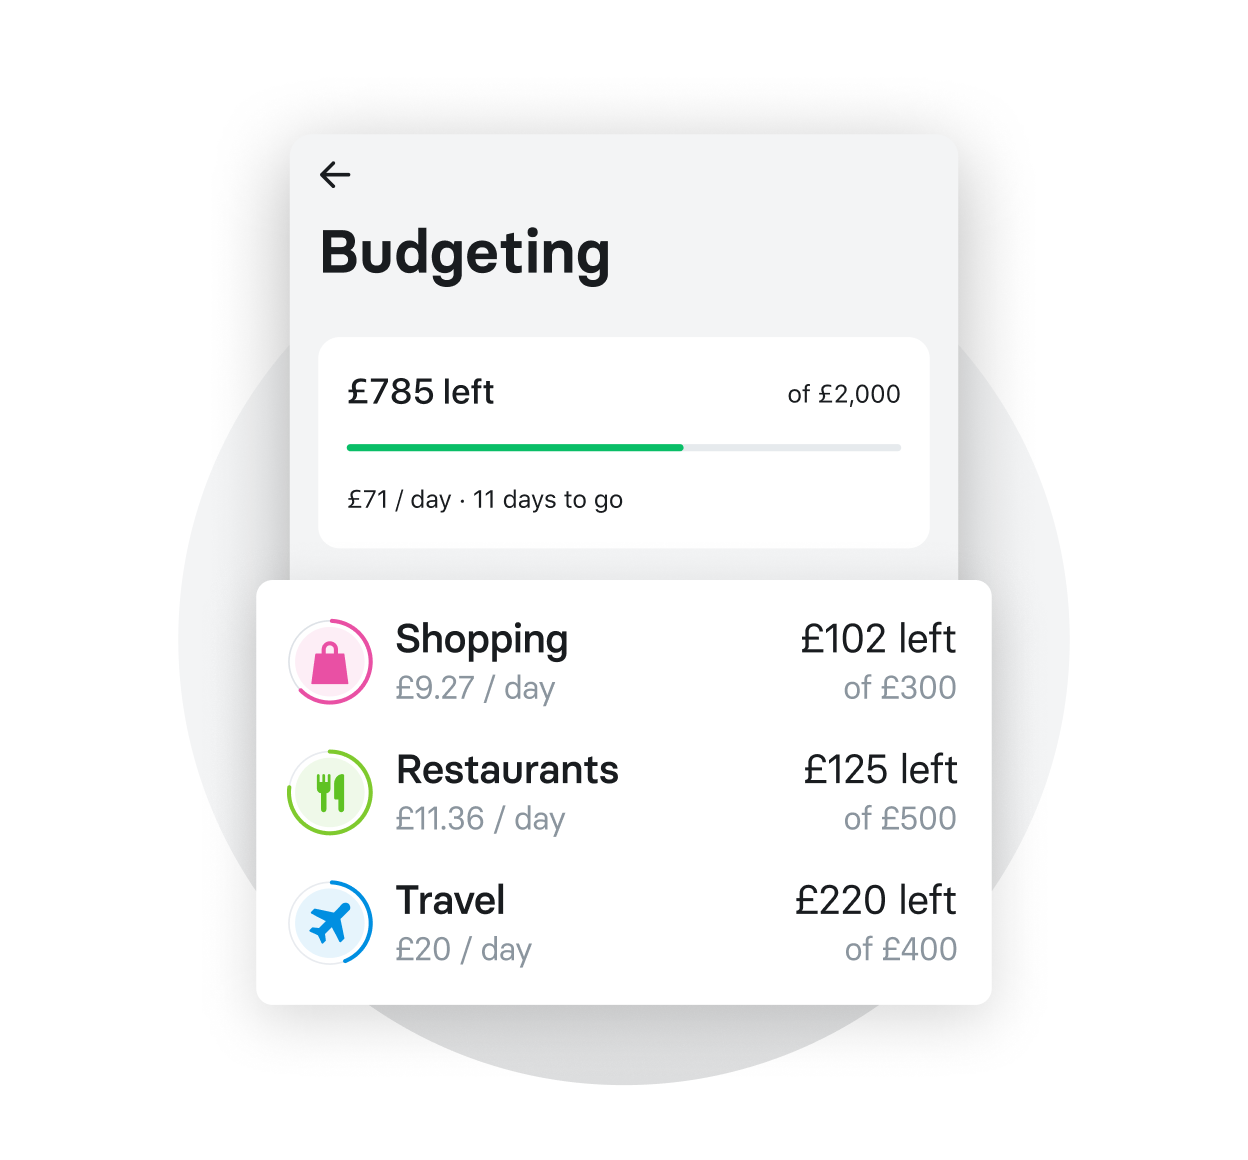 Budget tracking in real-time